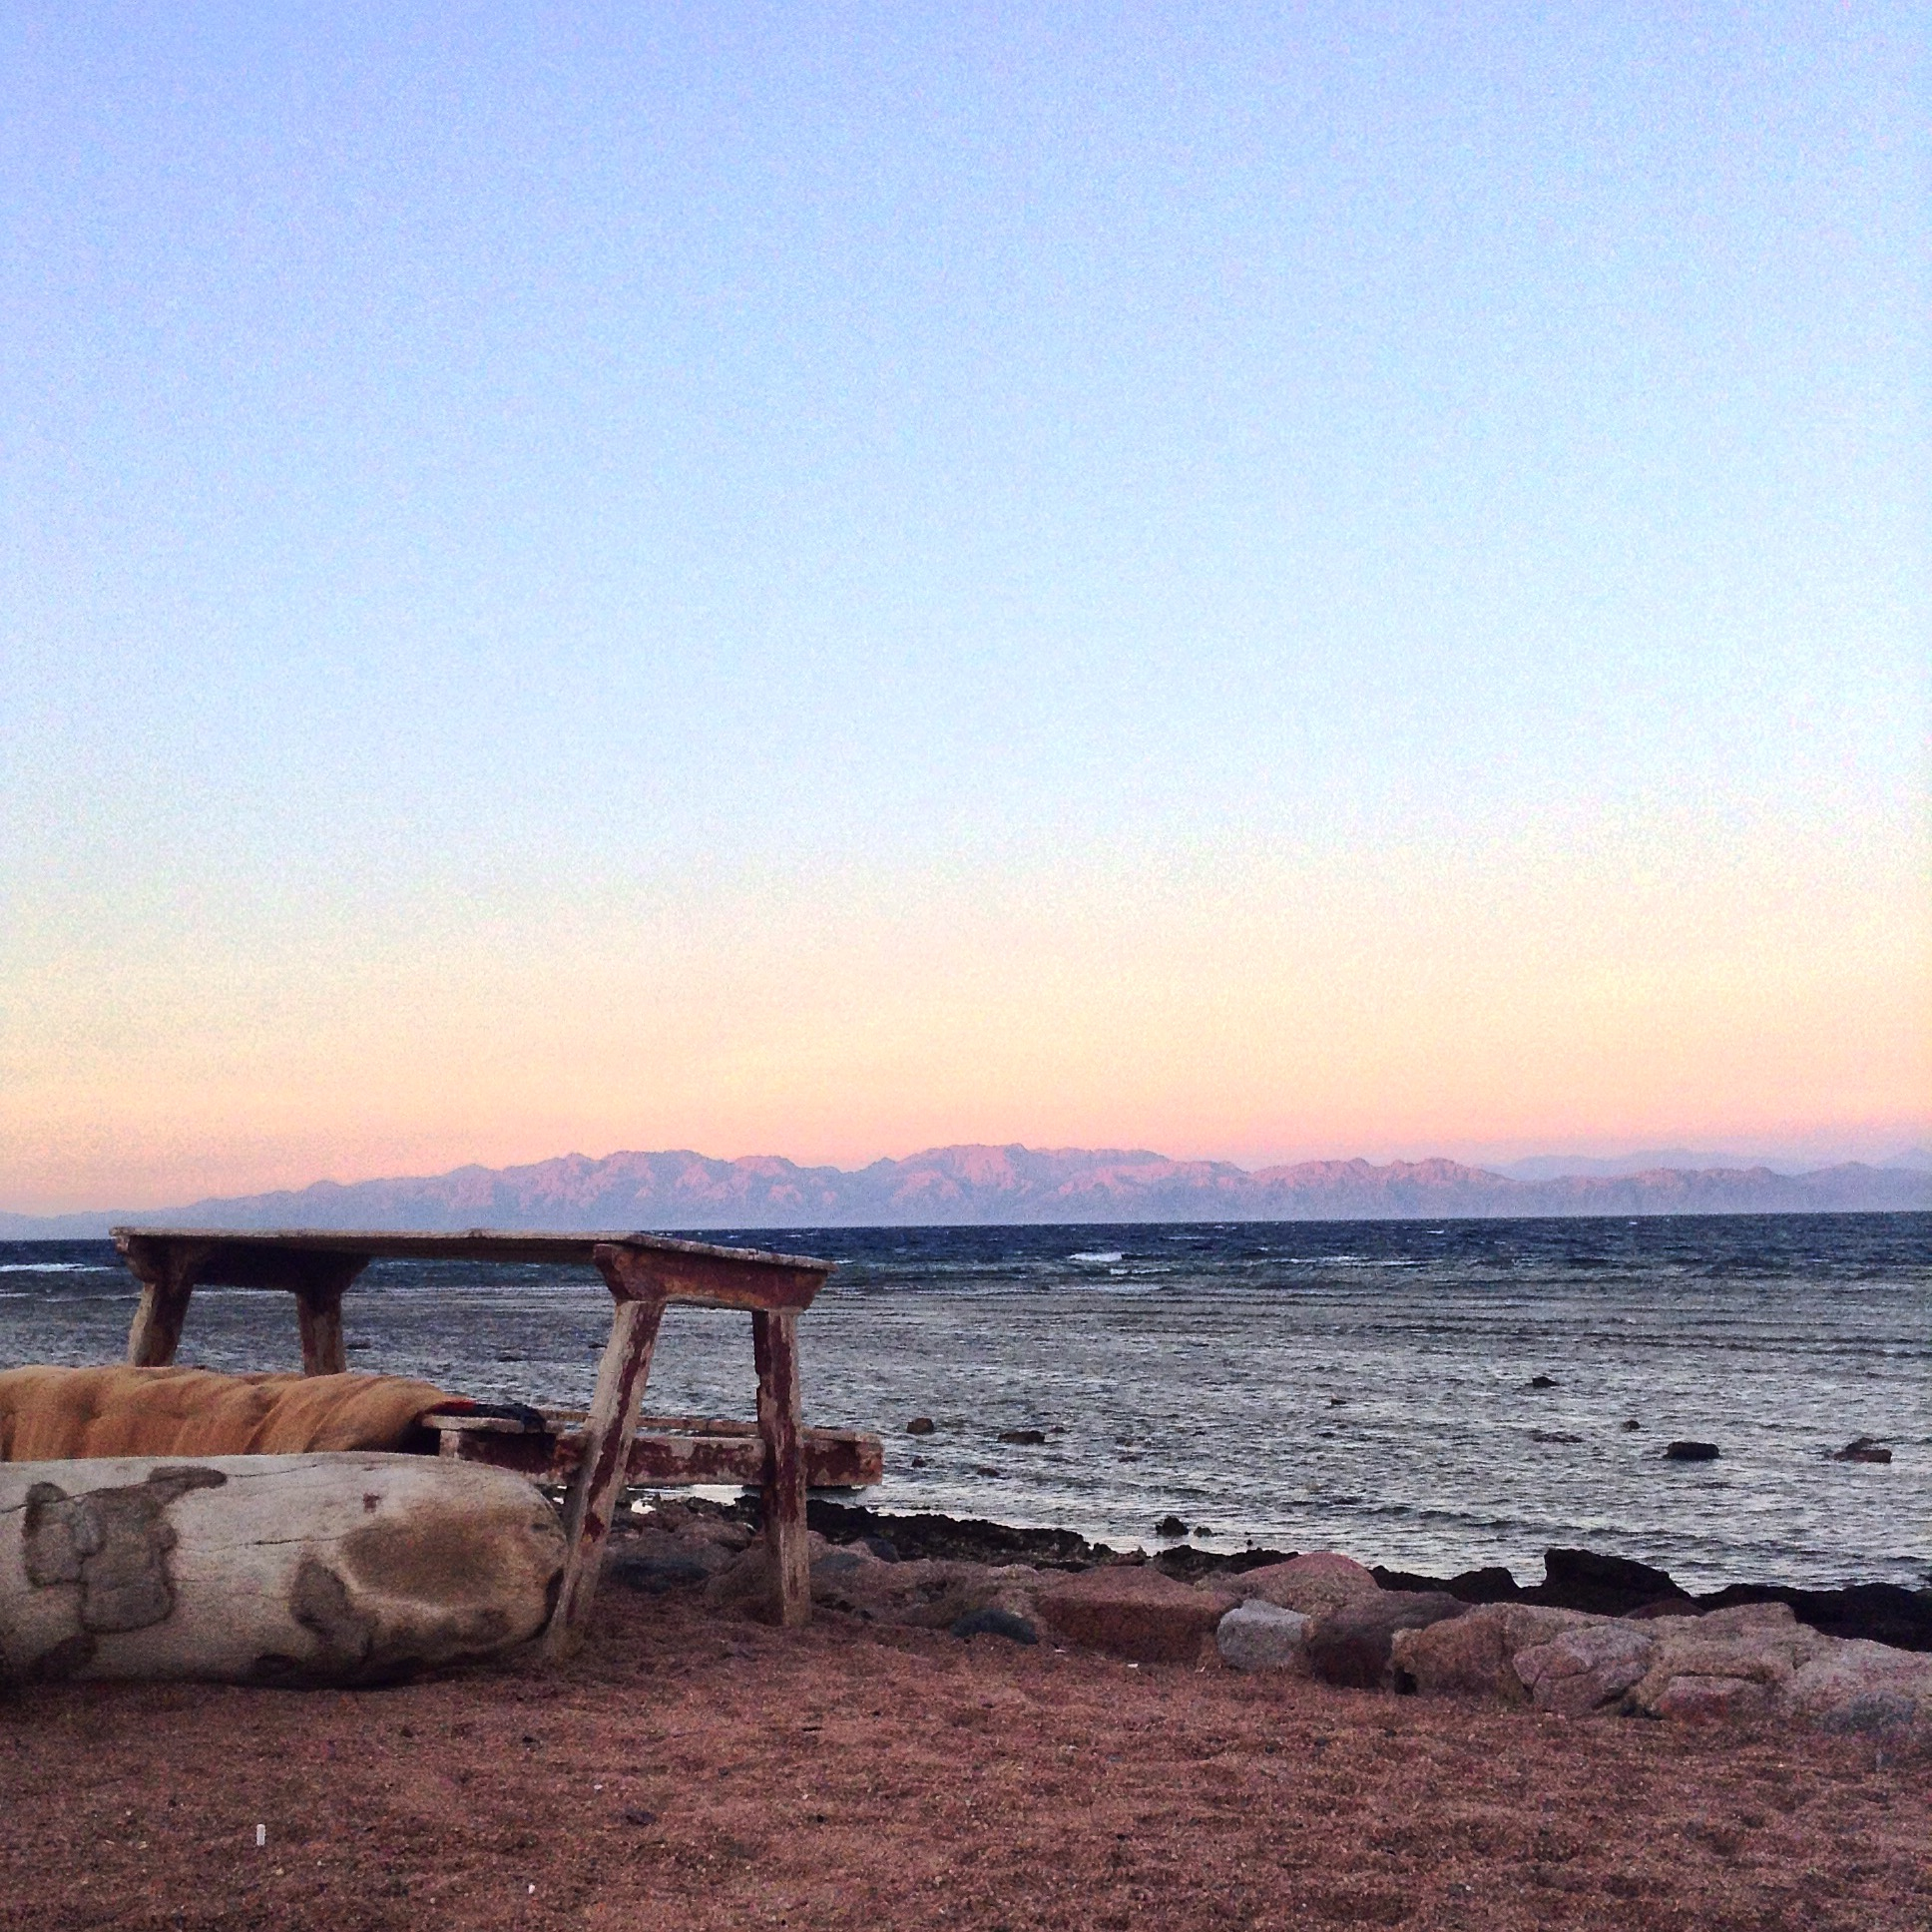 A picnic table on a beach with the pastel colors of a sunset in the background with mountains on the other side of the Red Sea